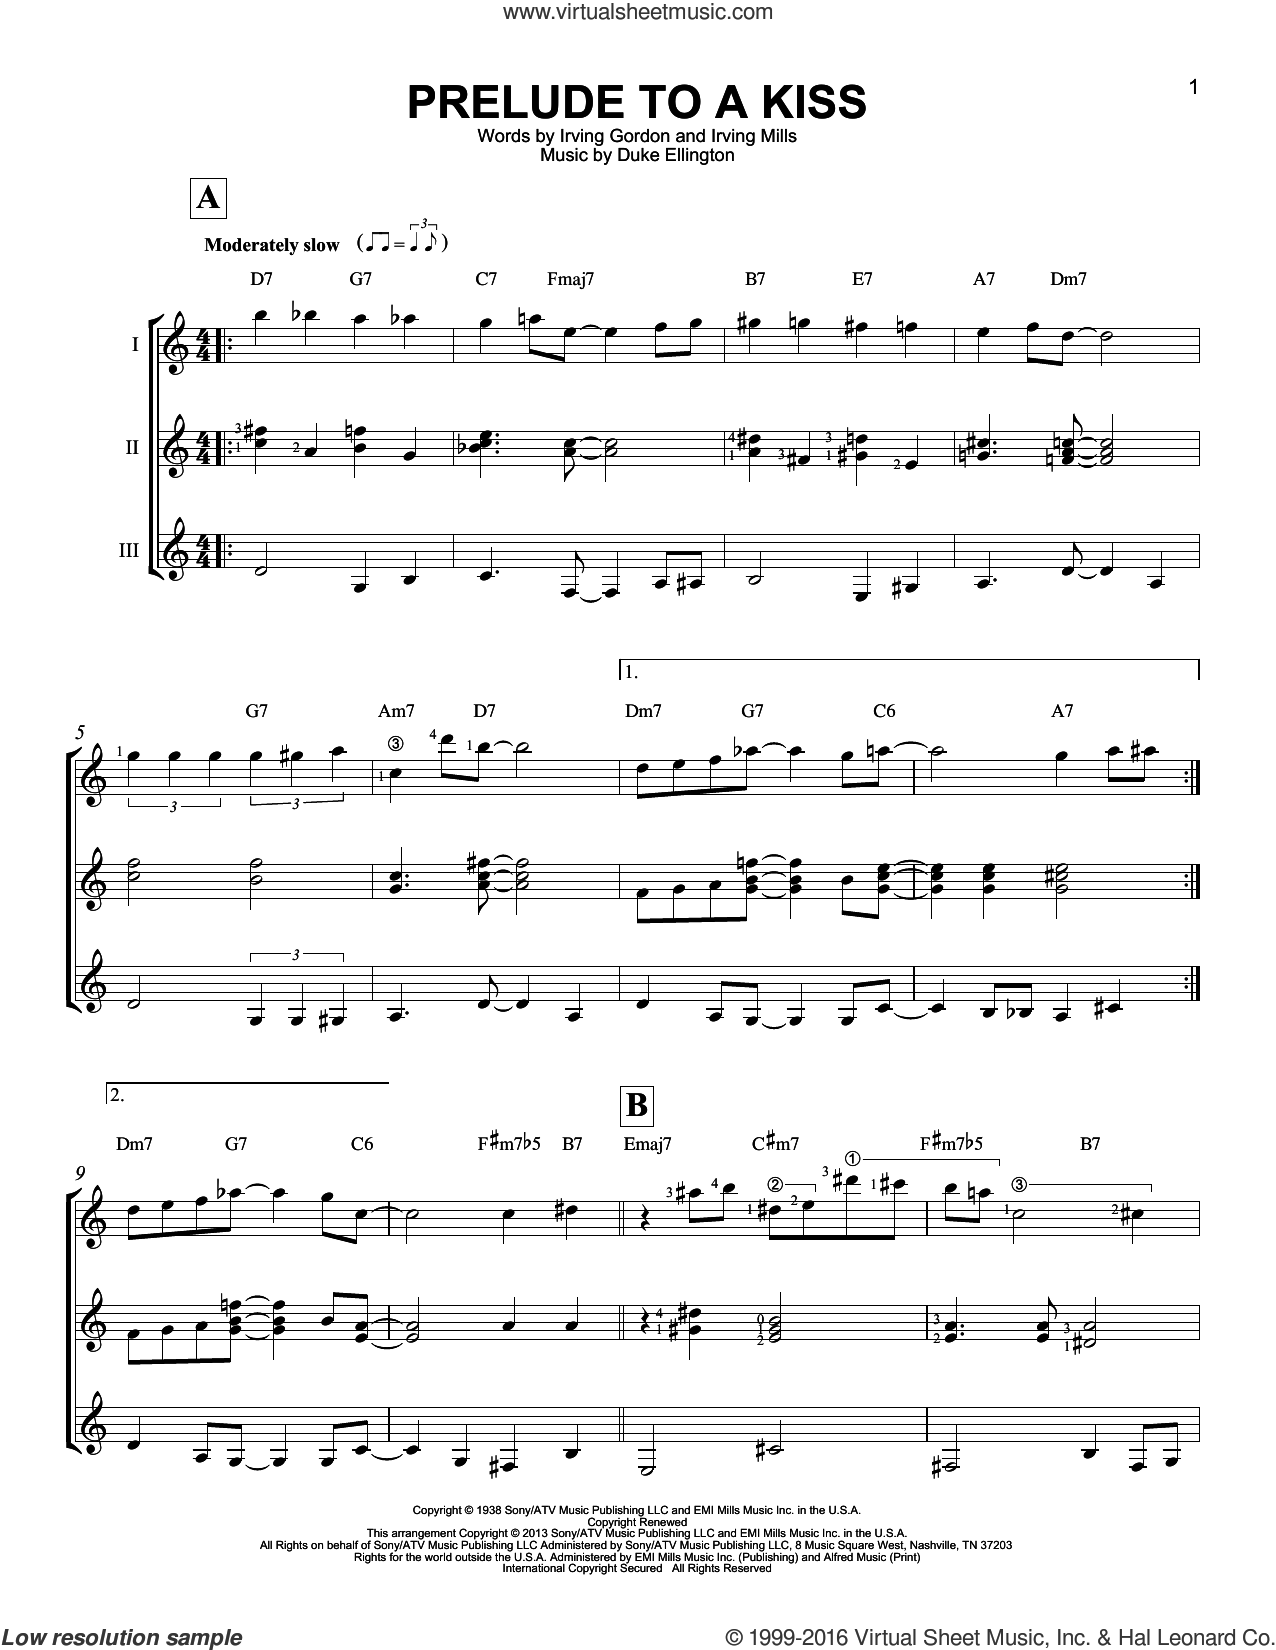 Prelude To A Kiss sheet music for guitar ensemble by Duke Ellington, Irving Gordon and Irving Mills, intermediate guitar ensemble. Score Image Preview.